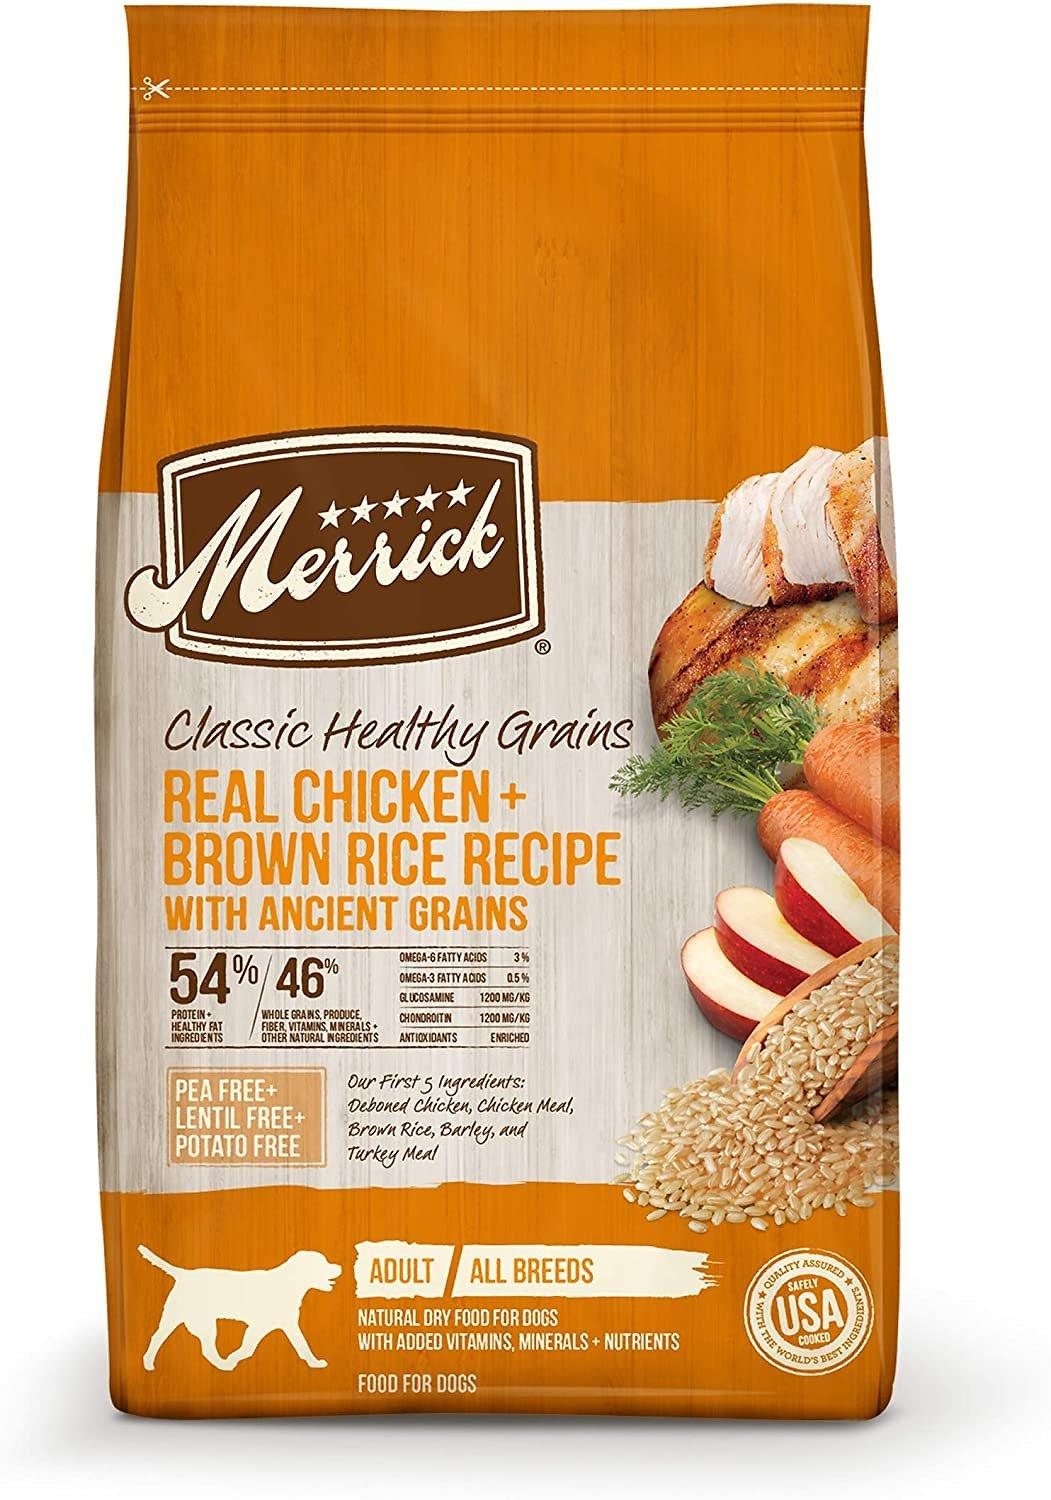 Merrick Classic Healthy Grains Real Chicken + Brown Rice Recipe with Ancient Grains Adult Dry Dog Food Image